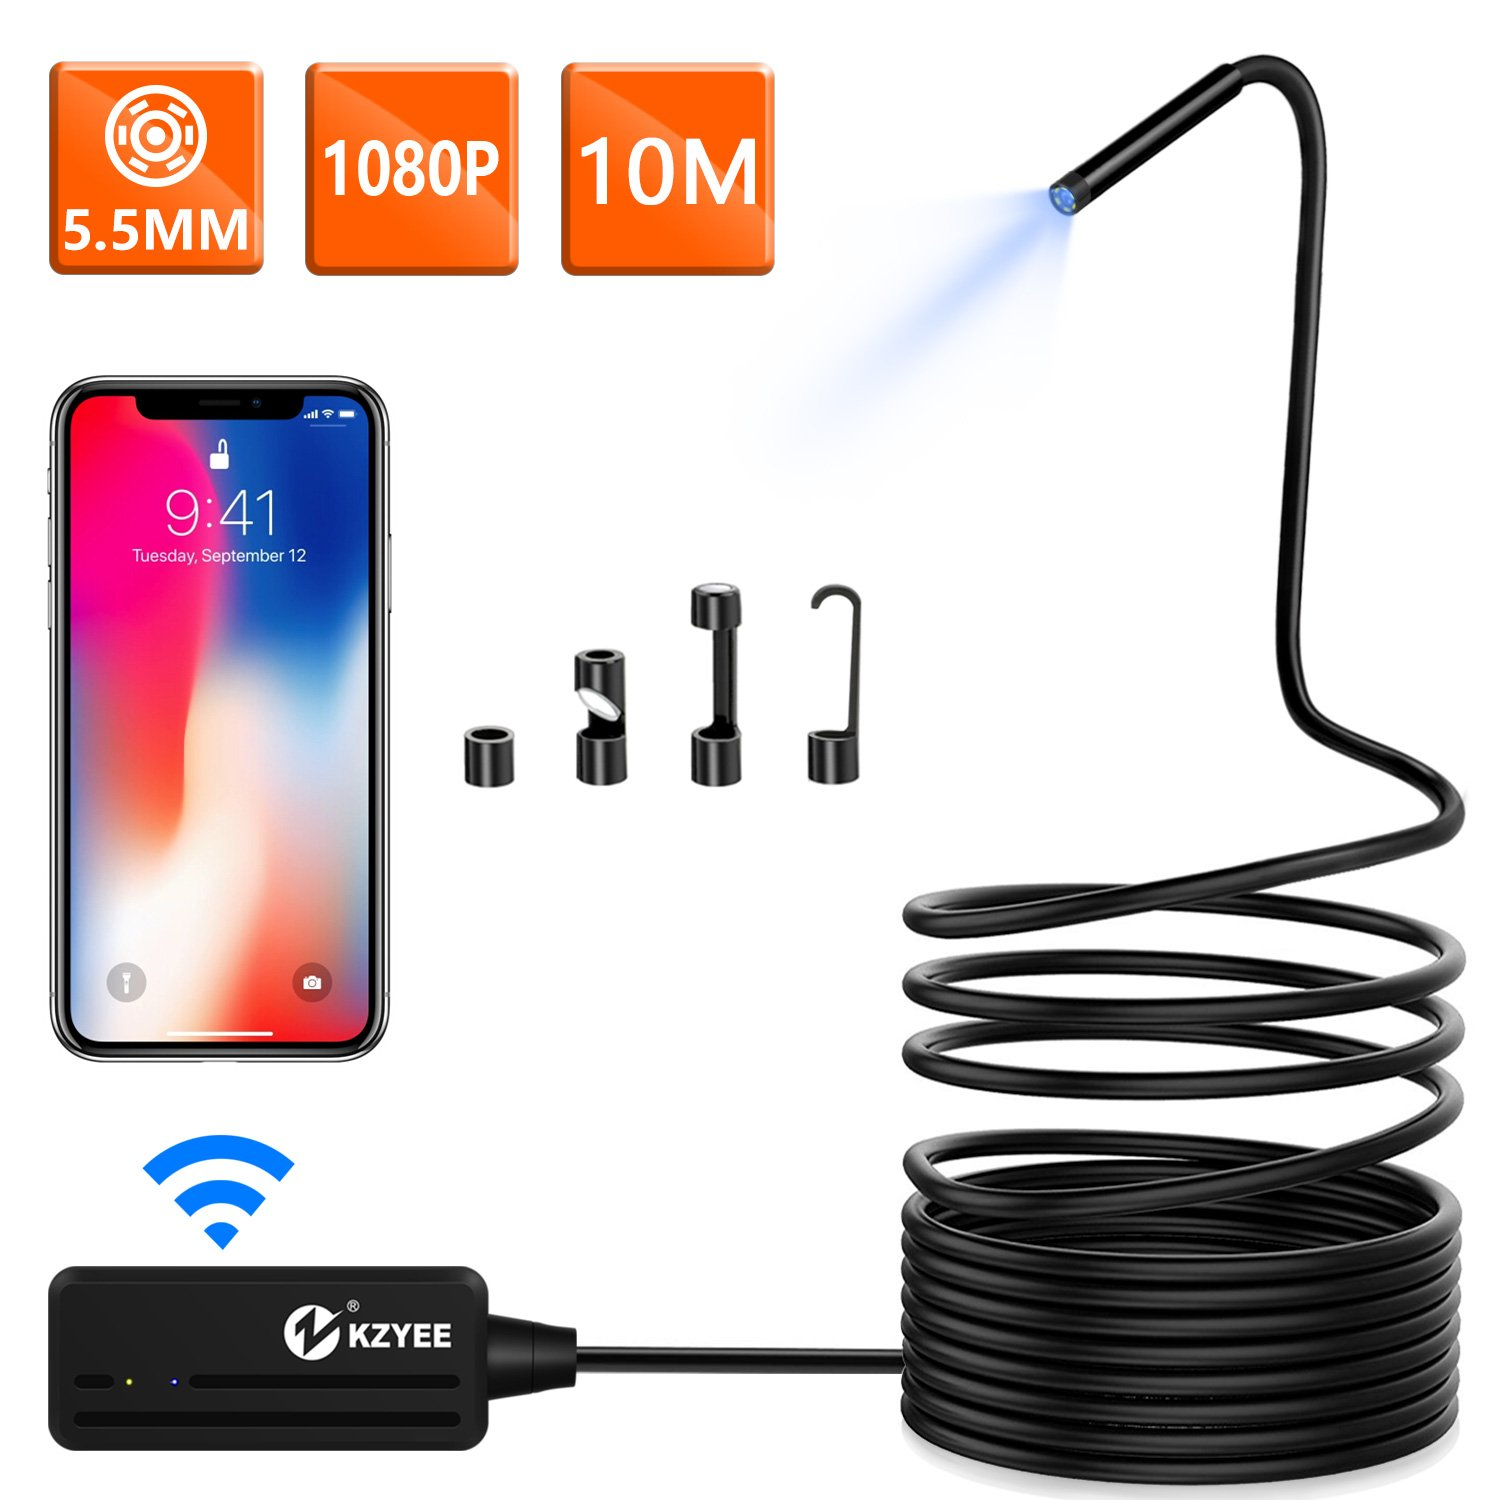 JIN Wifi Ear Endoscope USB Otoscope Inspection Camera Portable HD Borescope Ear Cleaning Tools Suitable For Android And IOS Smartphones,Windows MAC